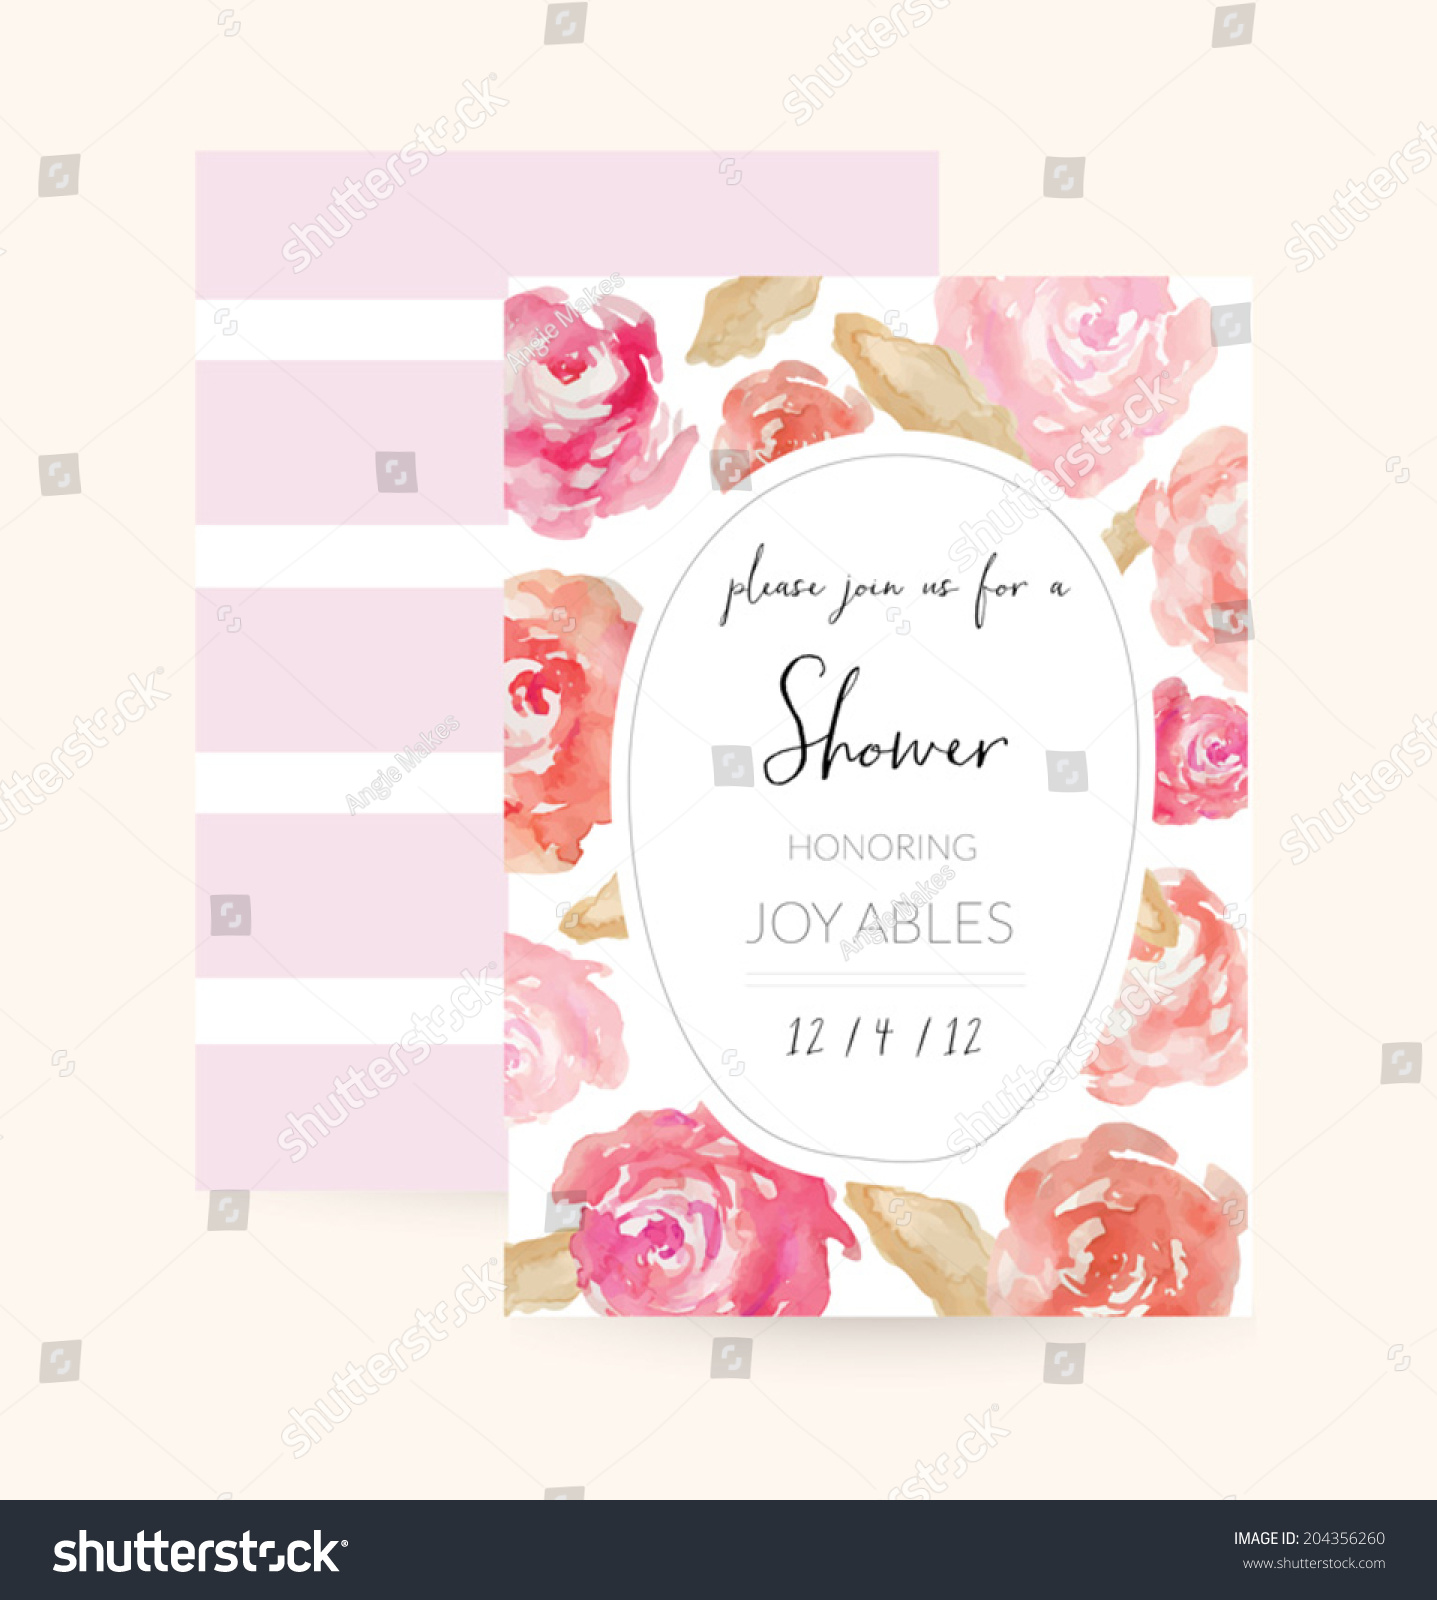 Blank Baby Shower Invitations Templates is awesome invitations template